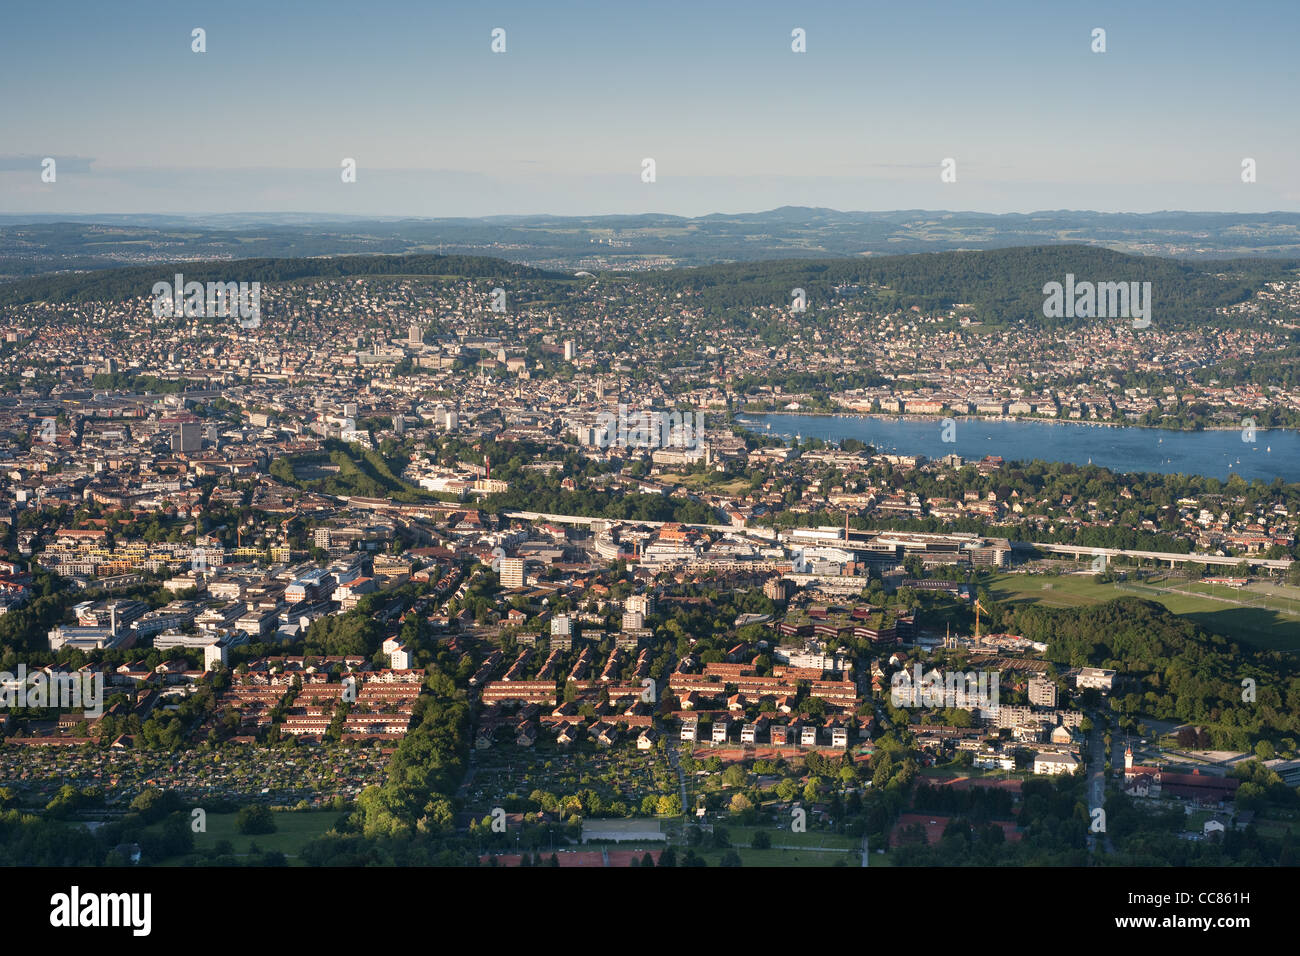 aerial view of zurich city taken from uetliberg on a clear day - Stock Image